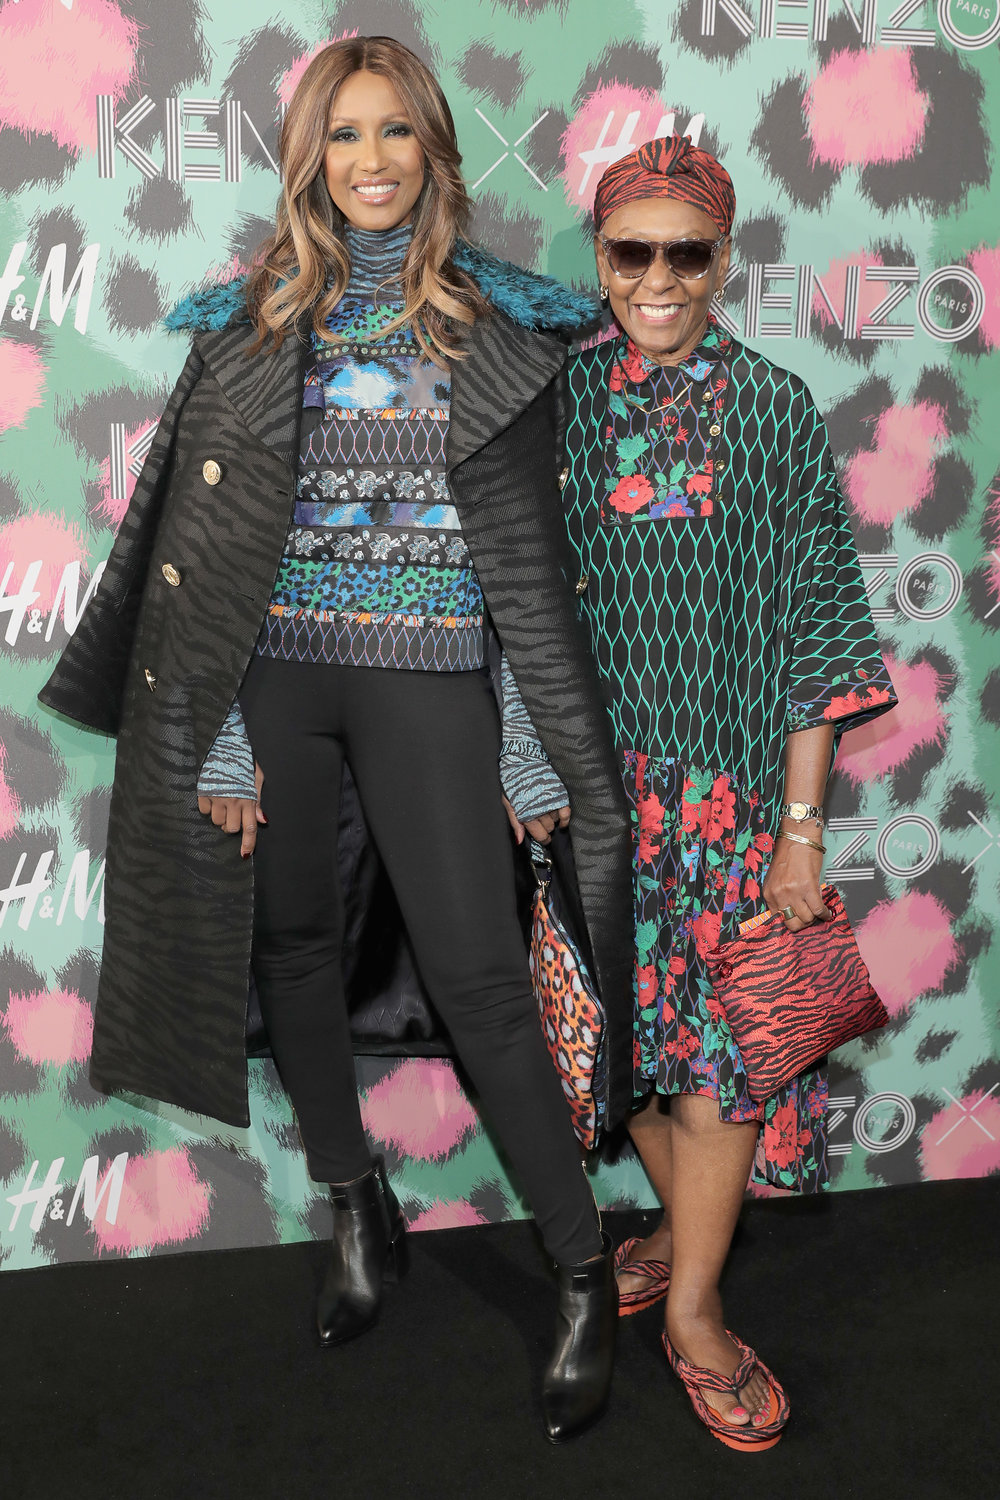 NEW YORK, NY - OCTOBER 19:  Iman and Bethann Hardison attend KENZO x H&M Launch Event Directed By Jean-Paul Goude'  at Pier 36 on October 19, 2016 in New York City.  (Photo by Neilson Barnard/Getty Images for H&M)